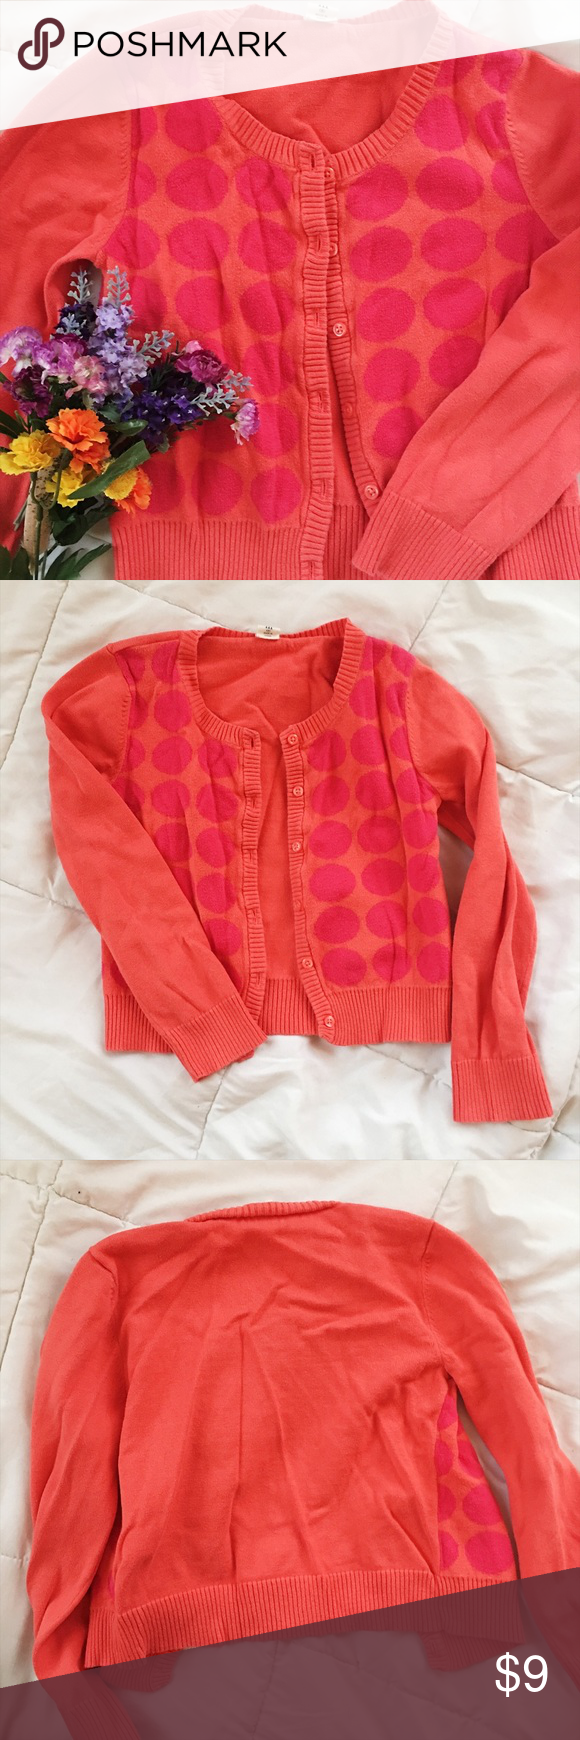 Polka Dot Orange/Pink Button Down Sweater | Kid, Navy shirts and ...